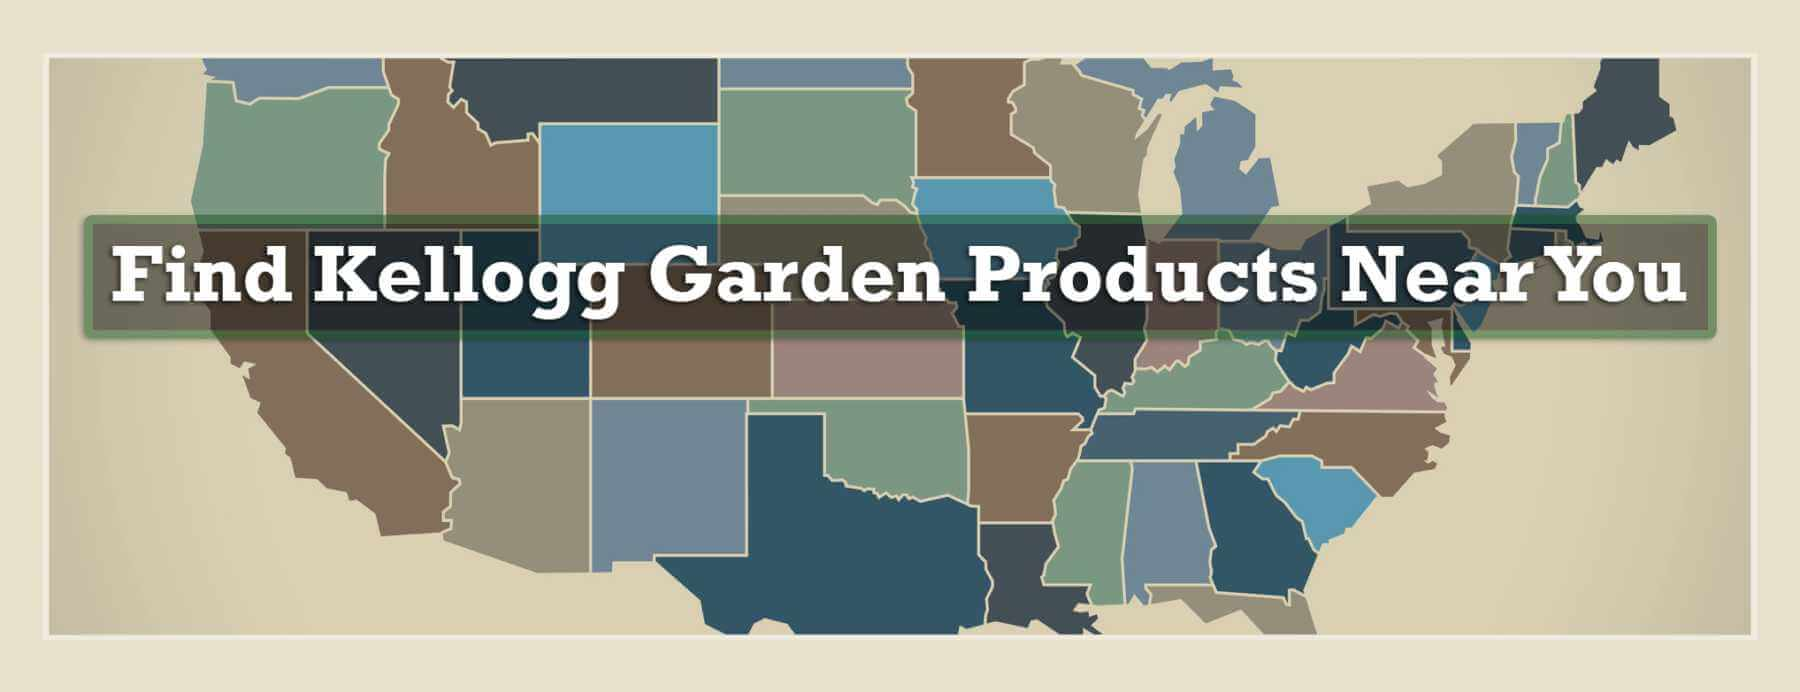 find kellogg garden products near you